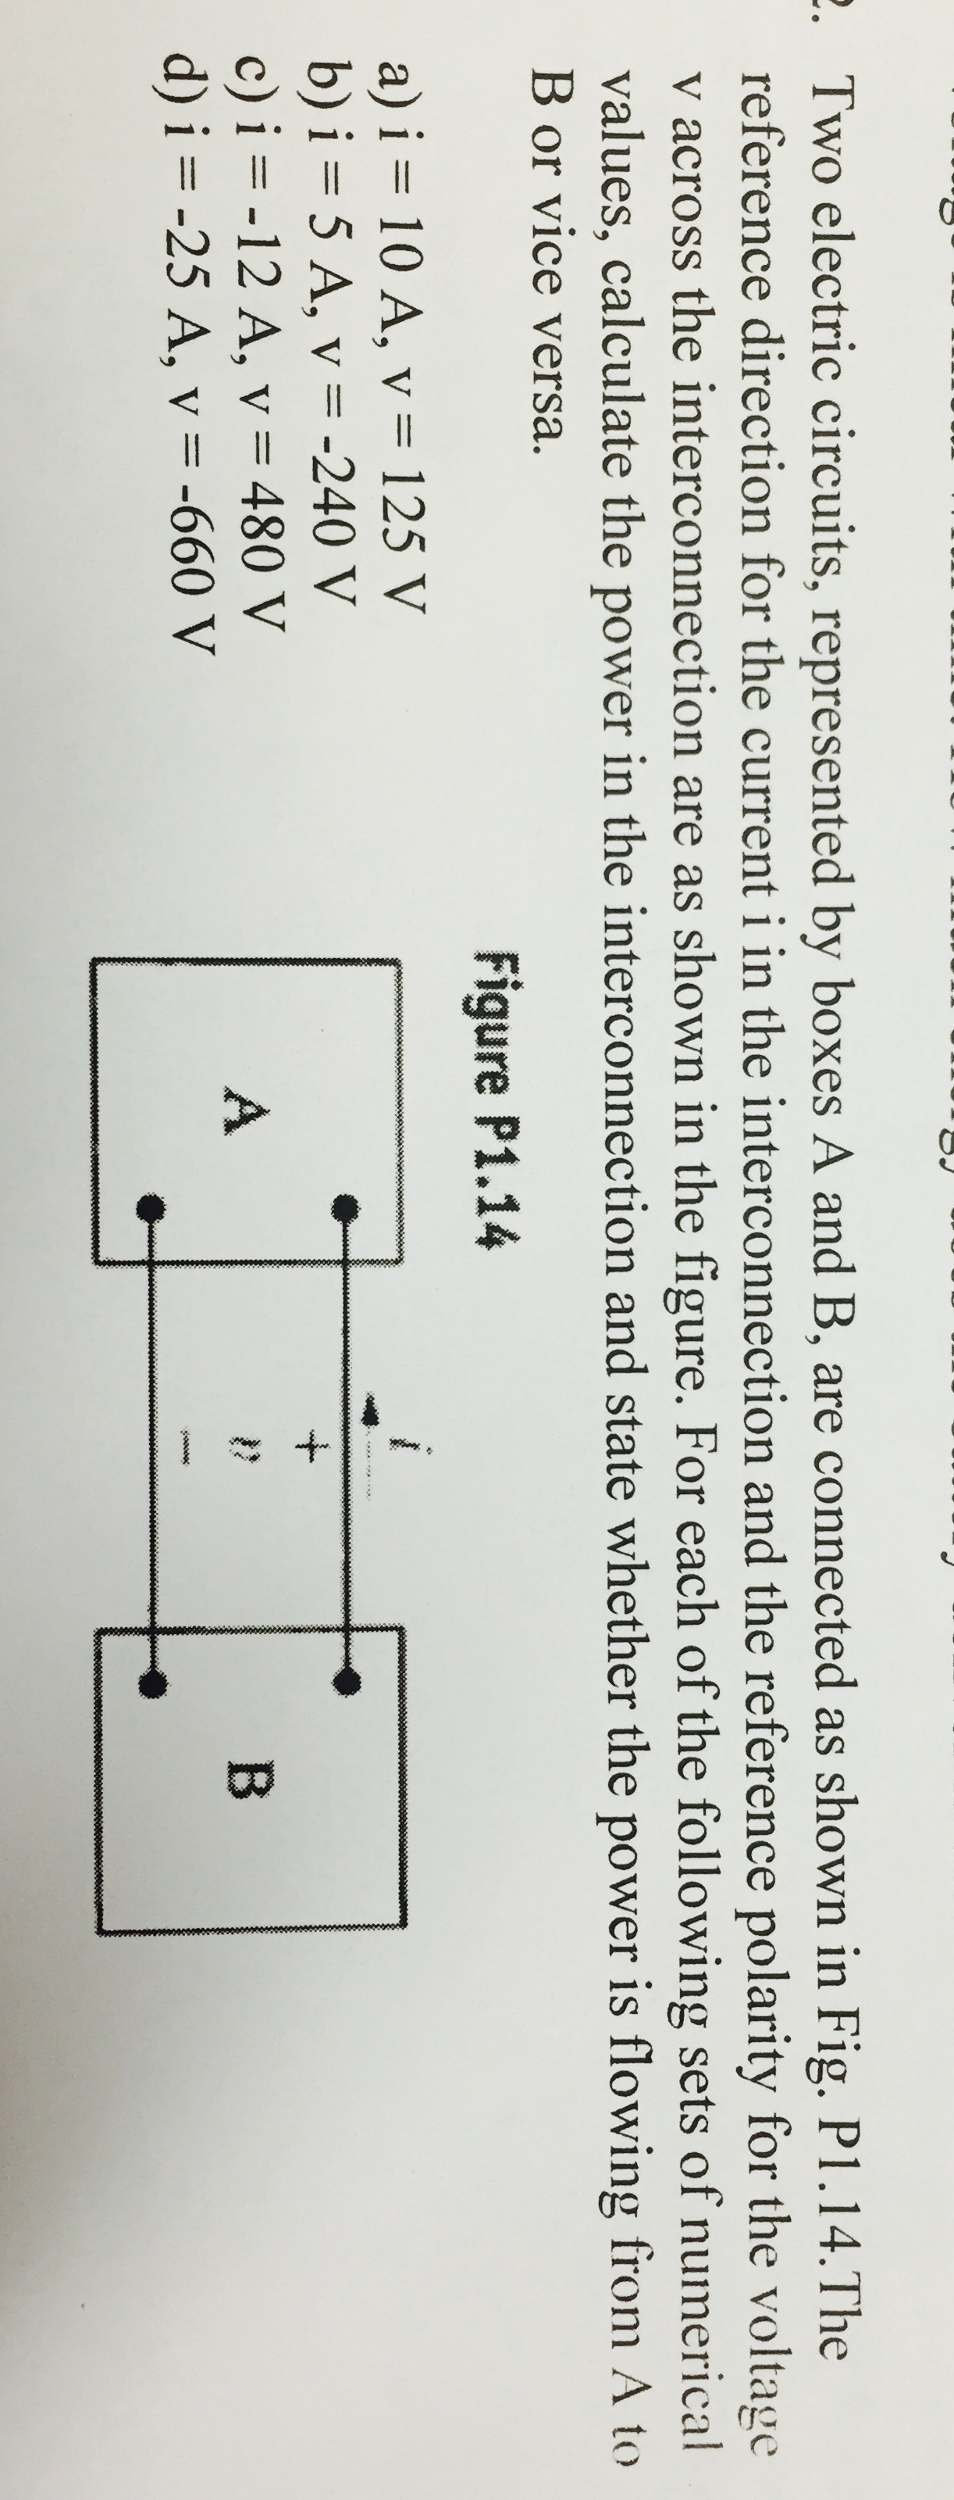 Solved Two Electric Circuits Represented By Boxes A And Electriccircuits Image For B Are Connected As